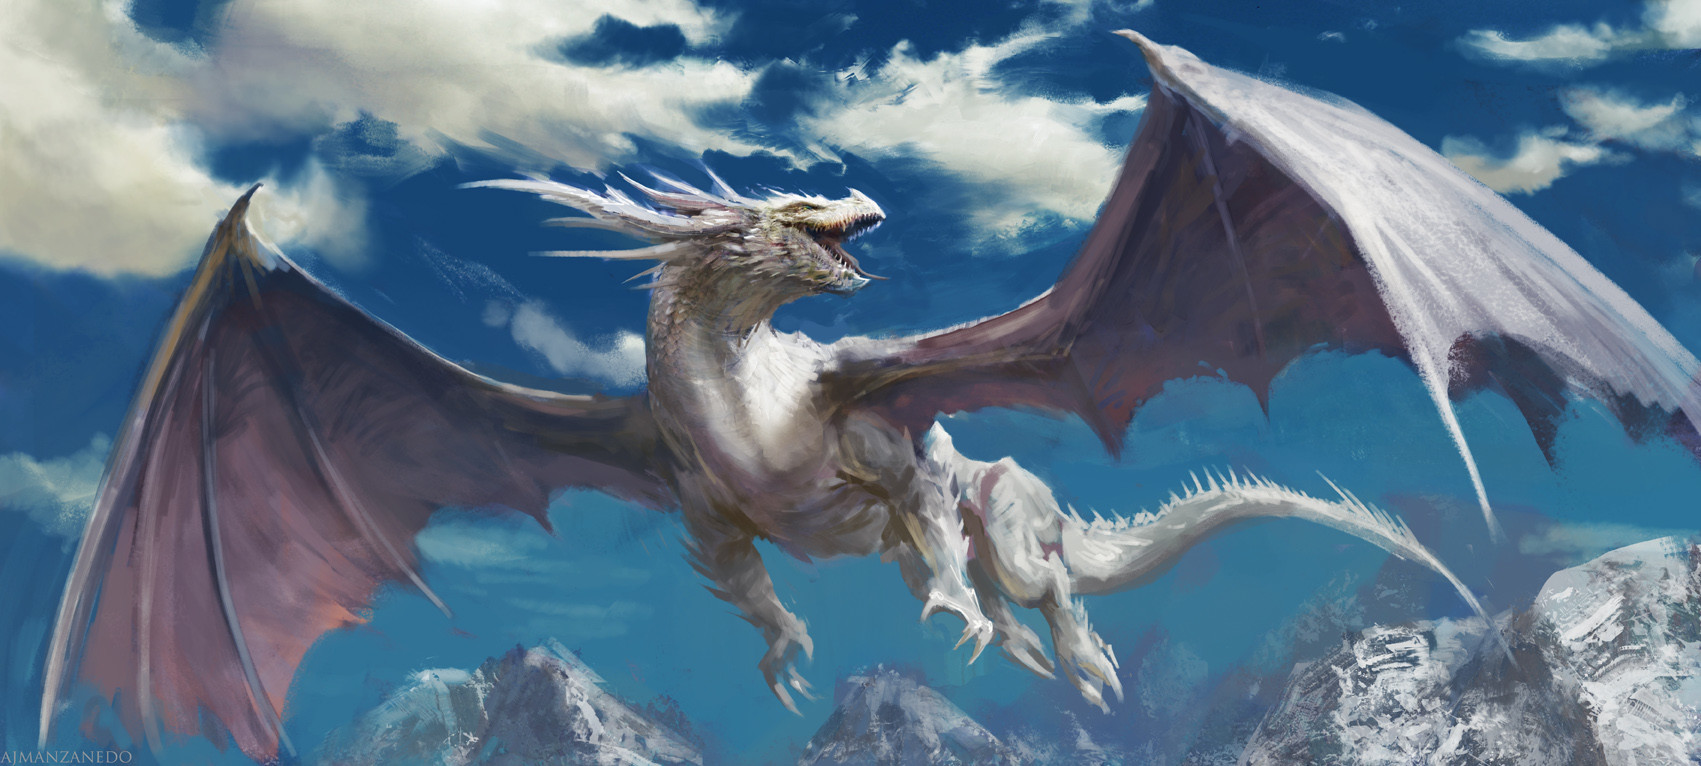 Antonio J. Manzanedo - White Dragon.